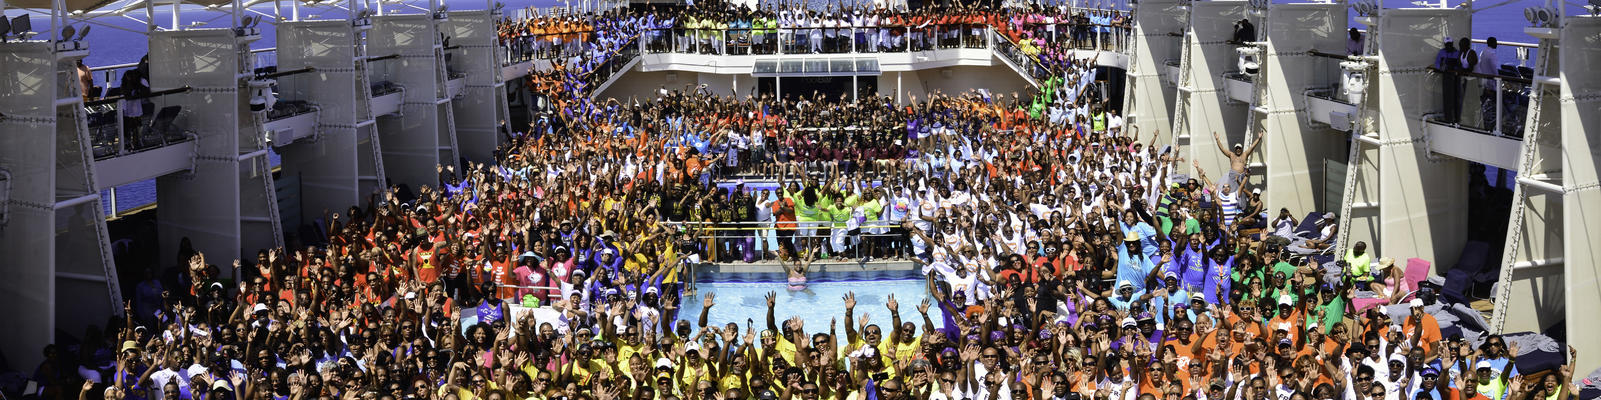 Image: Group photo from the 2018 Festival at Sea Cruise - Photo courtesy of Festival at Sea via Blue World Travel Corp.